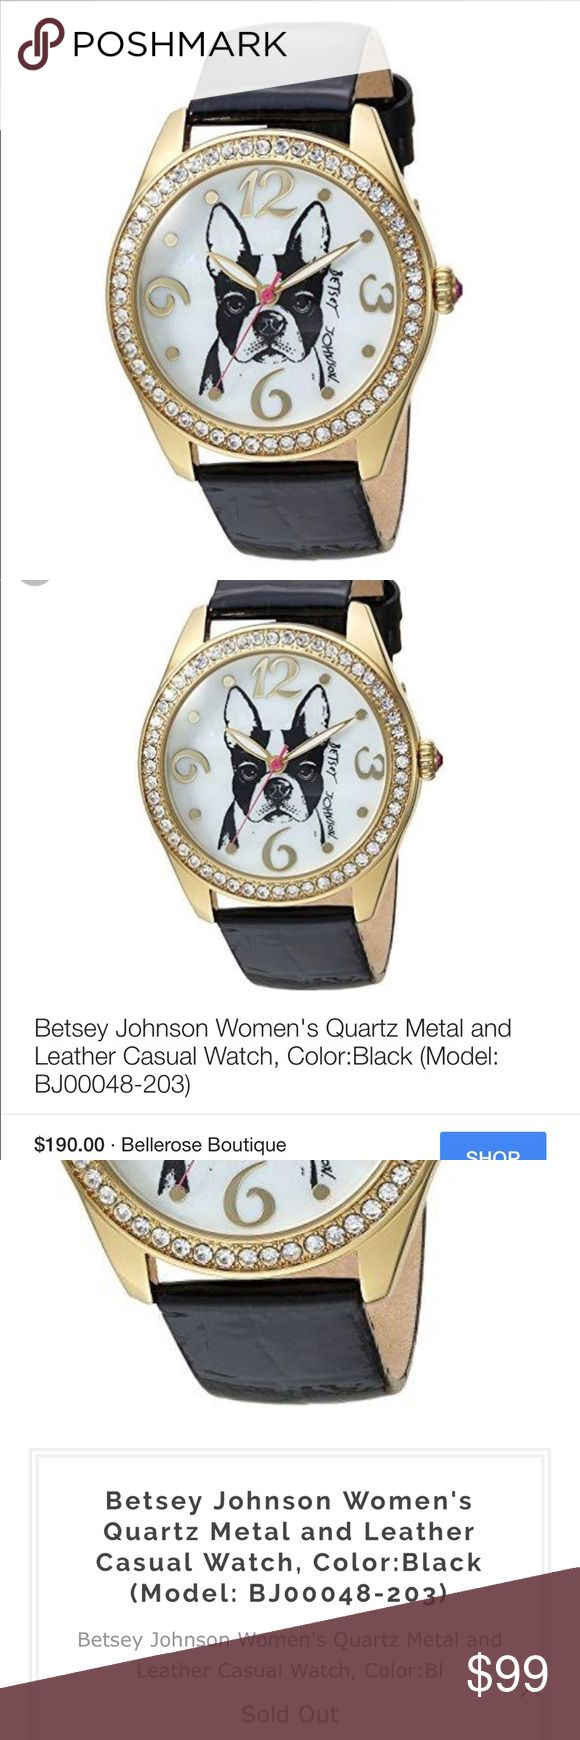 Betsey Johnson bulldog watch Super cute Betsey Johnson French bulldog watch  -brand new with tags in box  -genuine leather band -water resistant  -stainless steel backing so it is hypoallergenic -working battery  -no trades or holds please -same or next day shipping -no lowballing please  -sold out online Betsey Johnson Accessories Watches